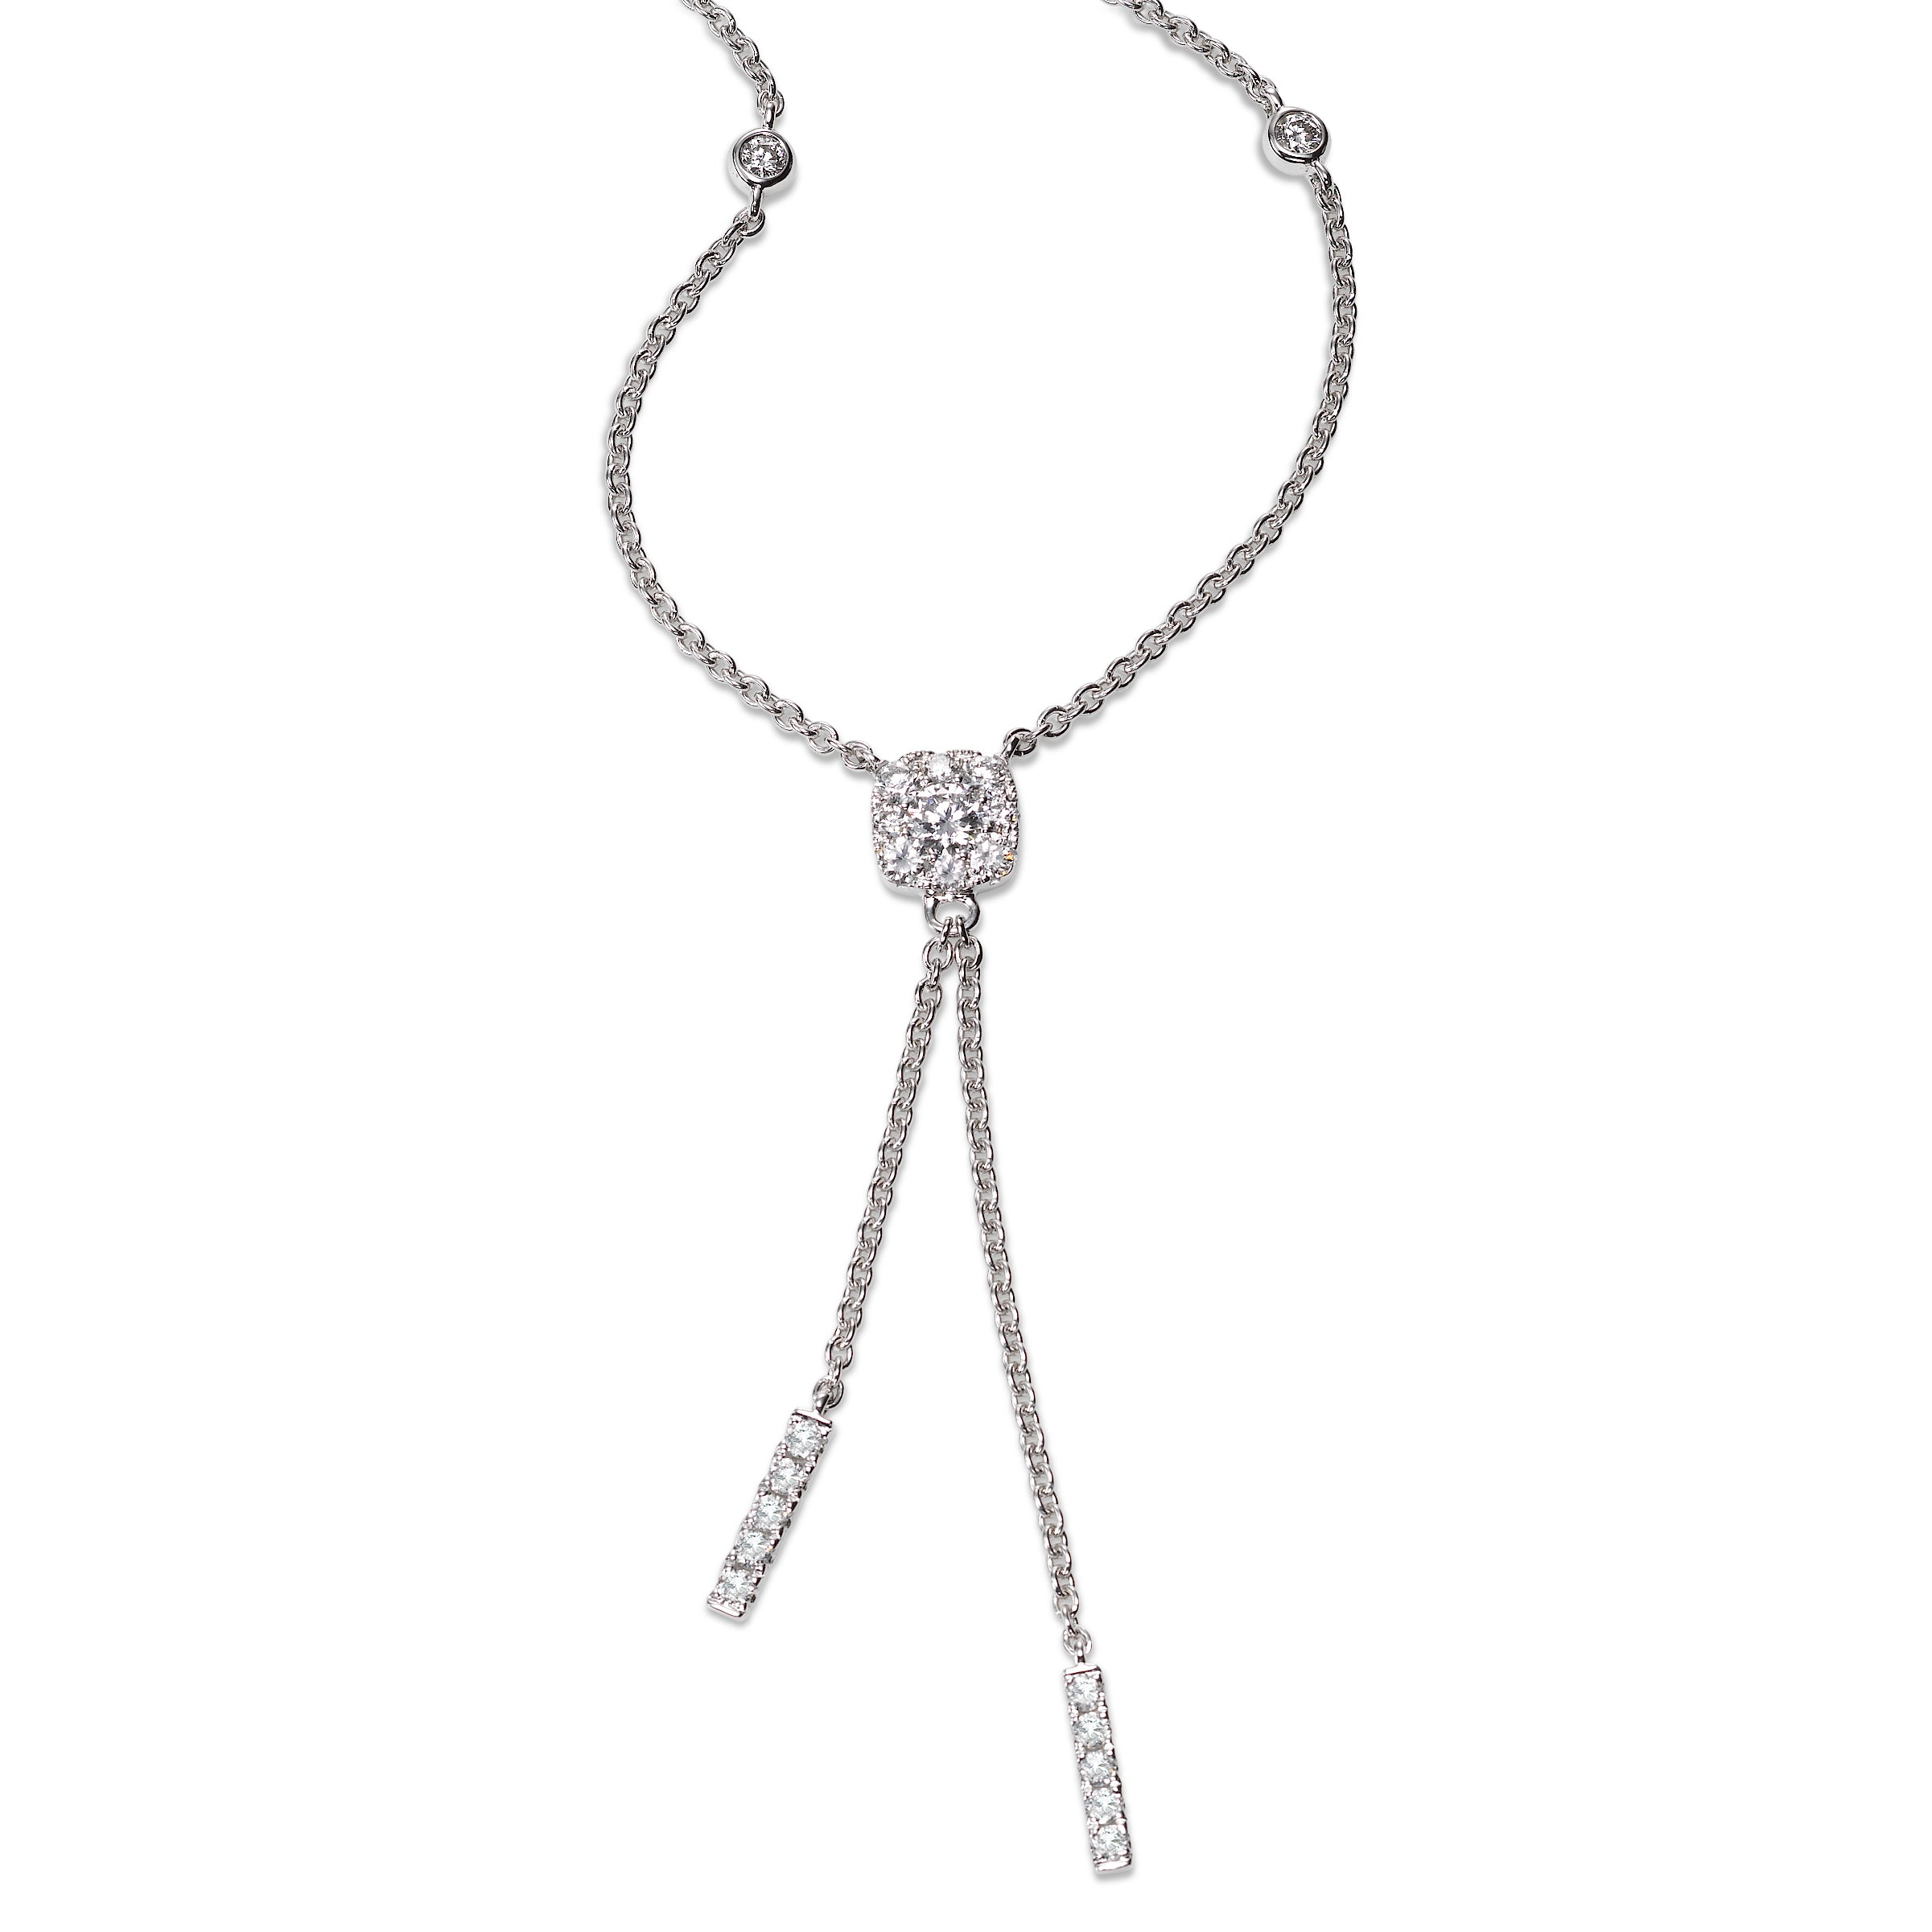 7028d7d51 Diamond Lariat Necklace, 18K White Gold – Fortunoff Fine Jewelry